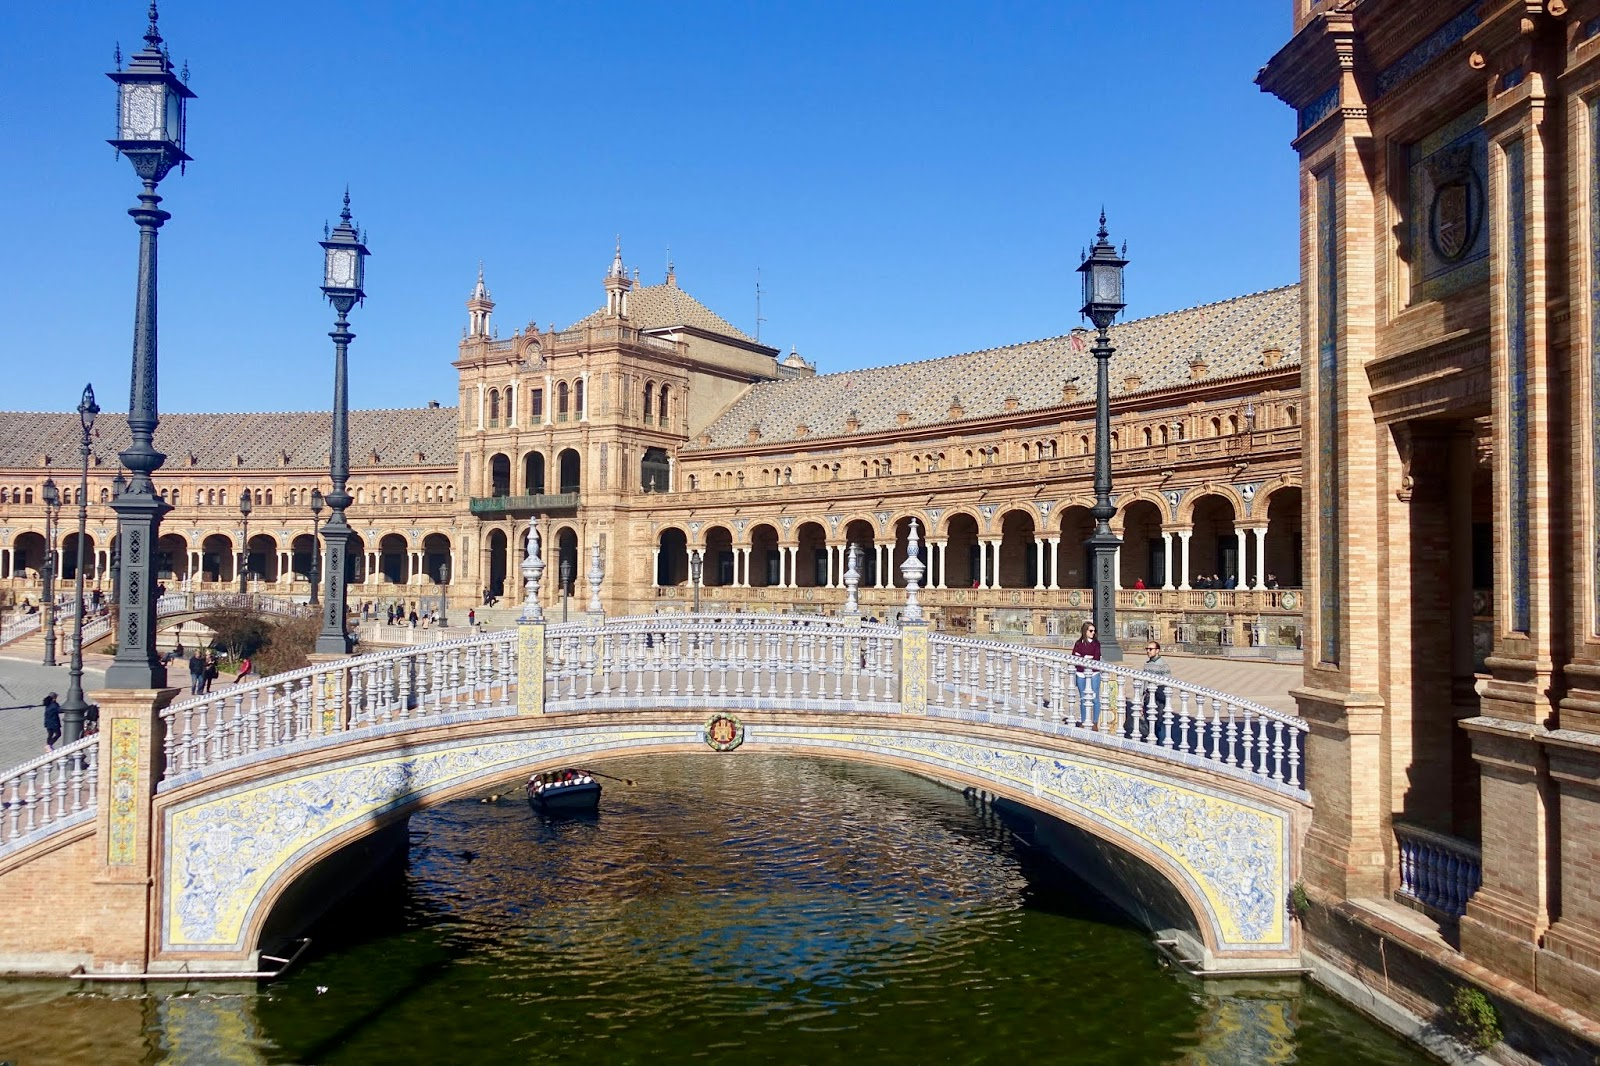 THINGS TO SEE, EAT AND DO IN SEVILLE